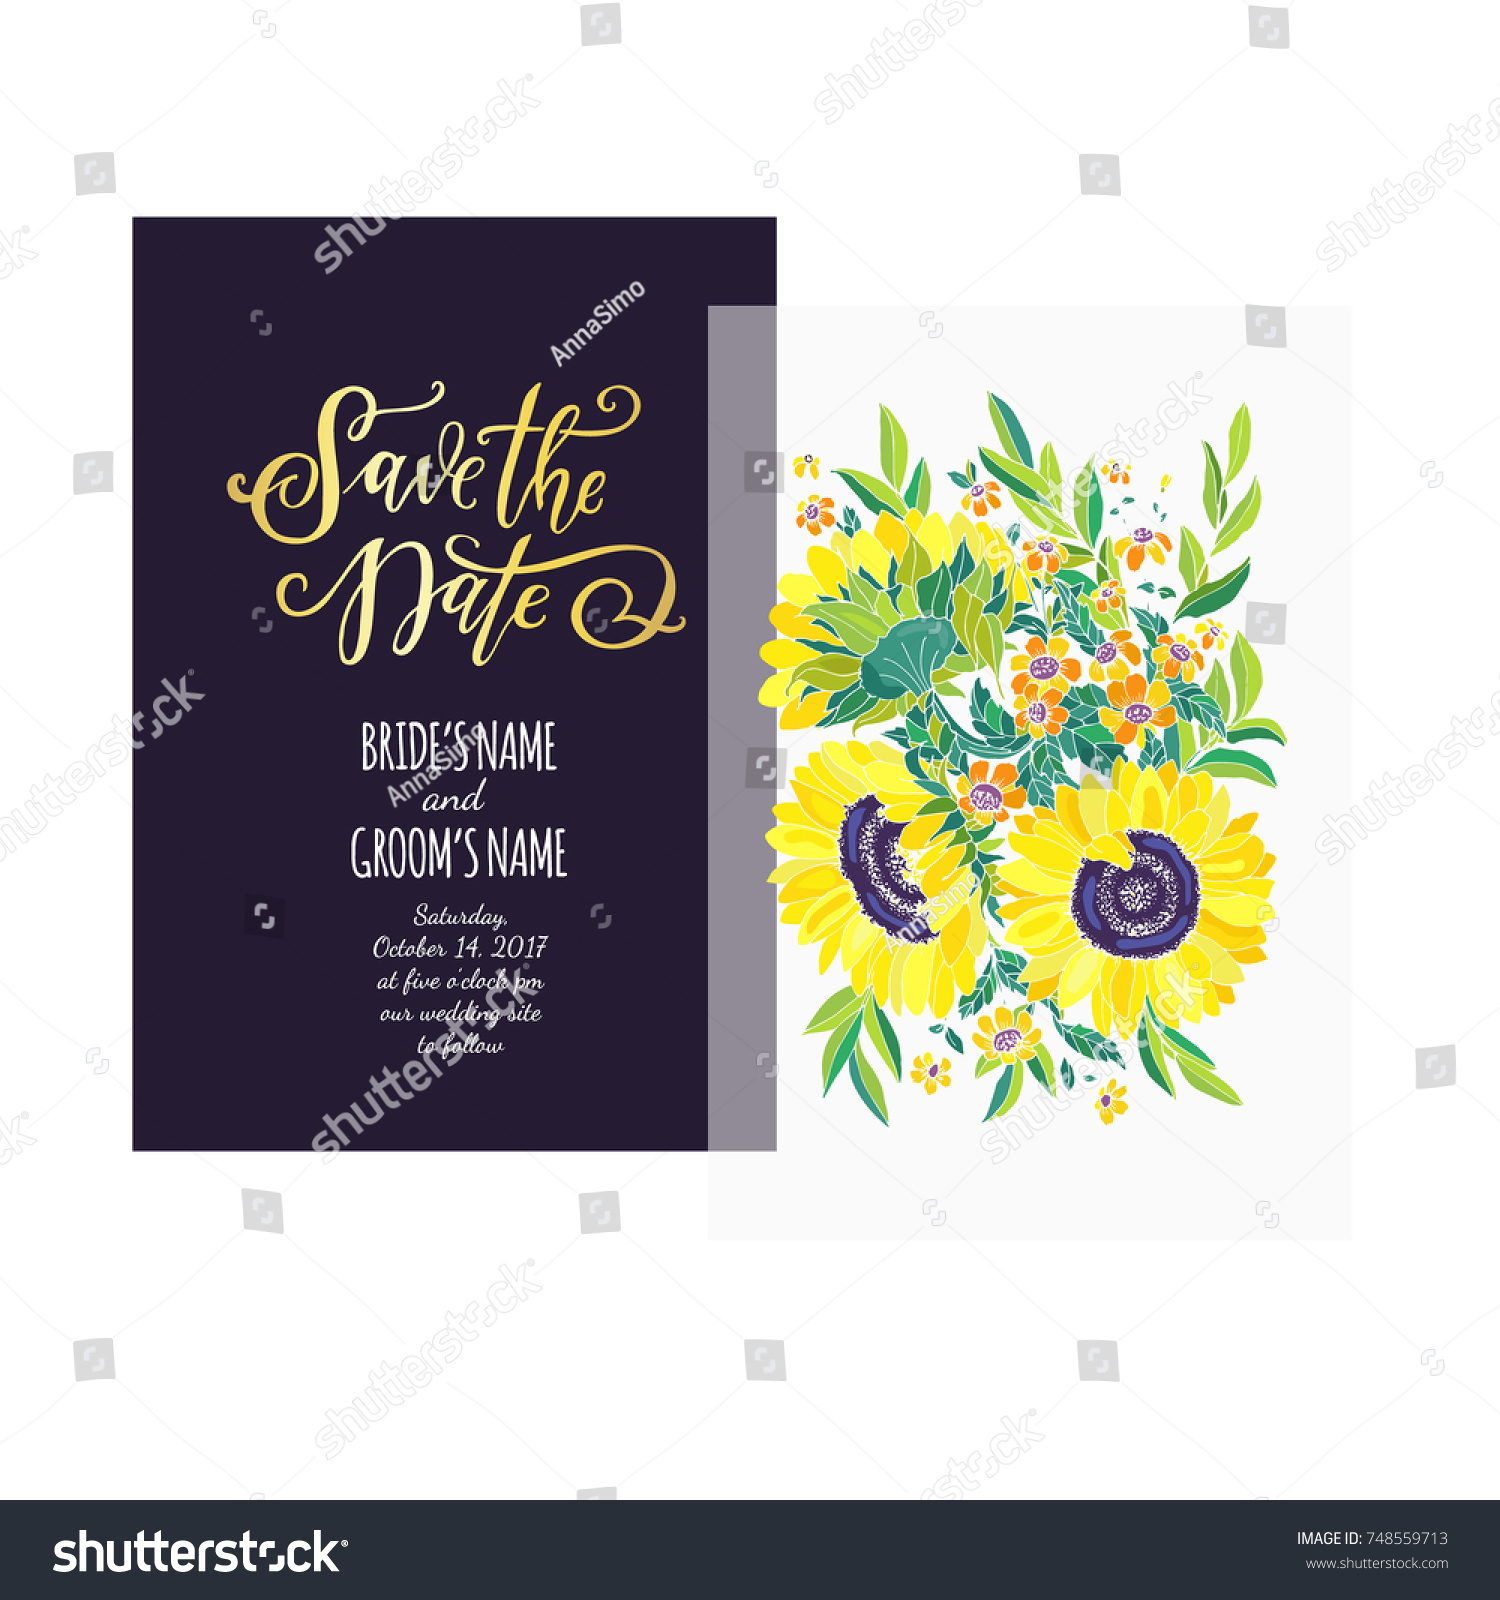 Save Date Card Template Wedding Invitation Stock Vector 748559713 ...